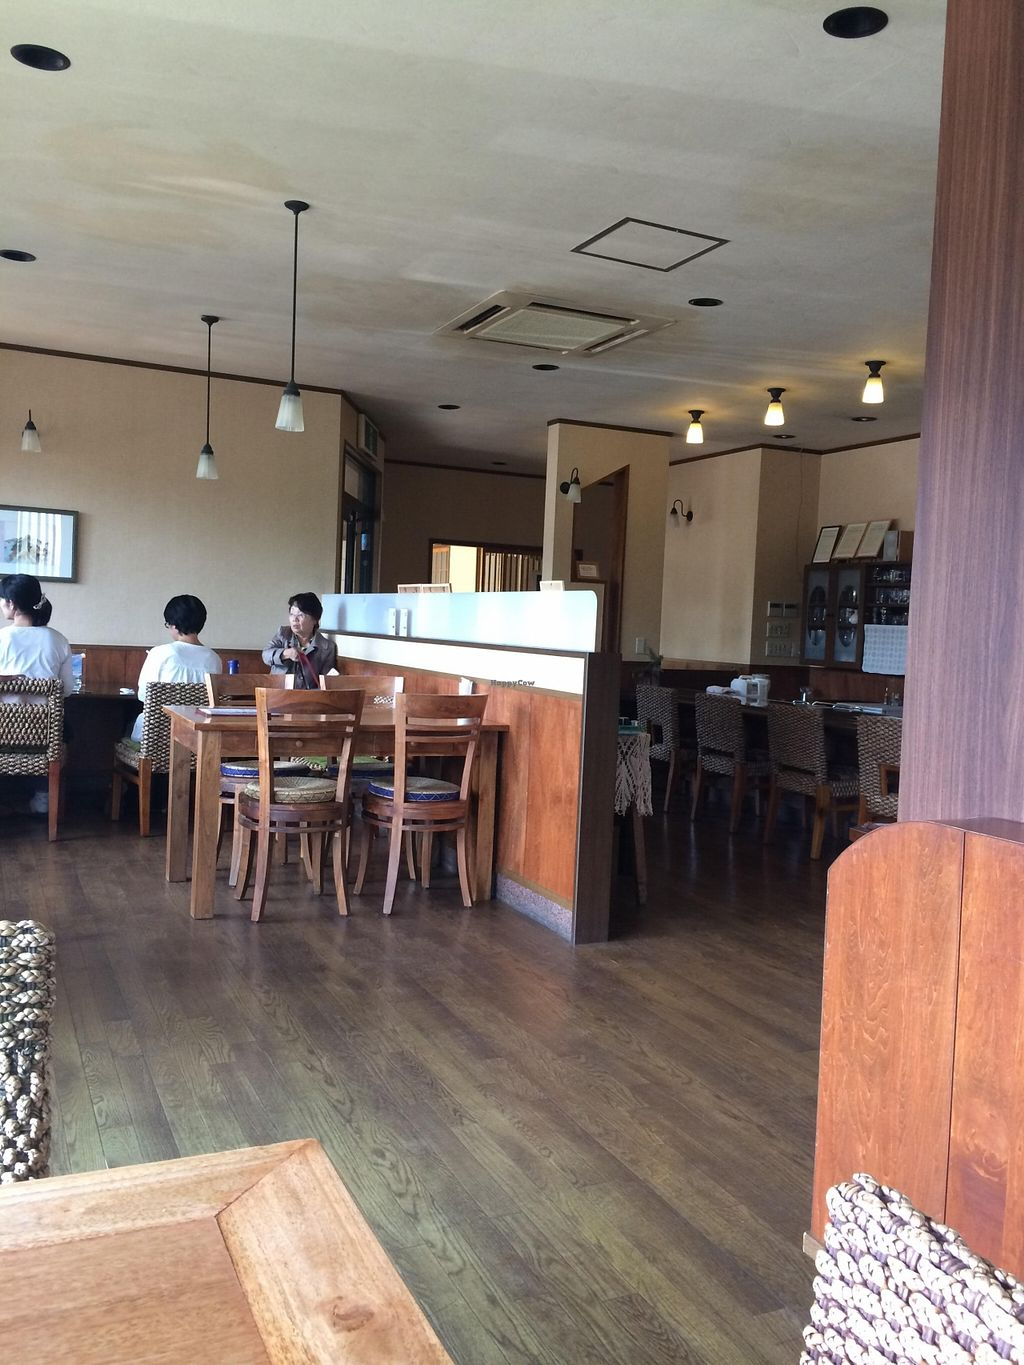 """Photo of Organic Cafe Kally  by <a href=""""/members/profile/Vegeiko"""">Vegeiko</a> <br/>Spacious place!! <br/> October 4, 2015  - <a href='/contact/abuse/image/64182/120228'>Report</a>"""